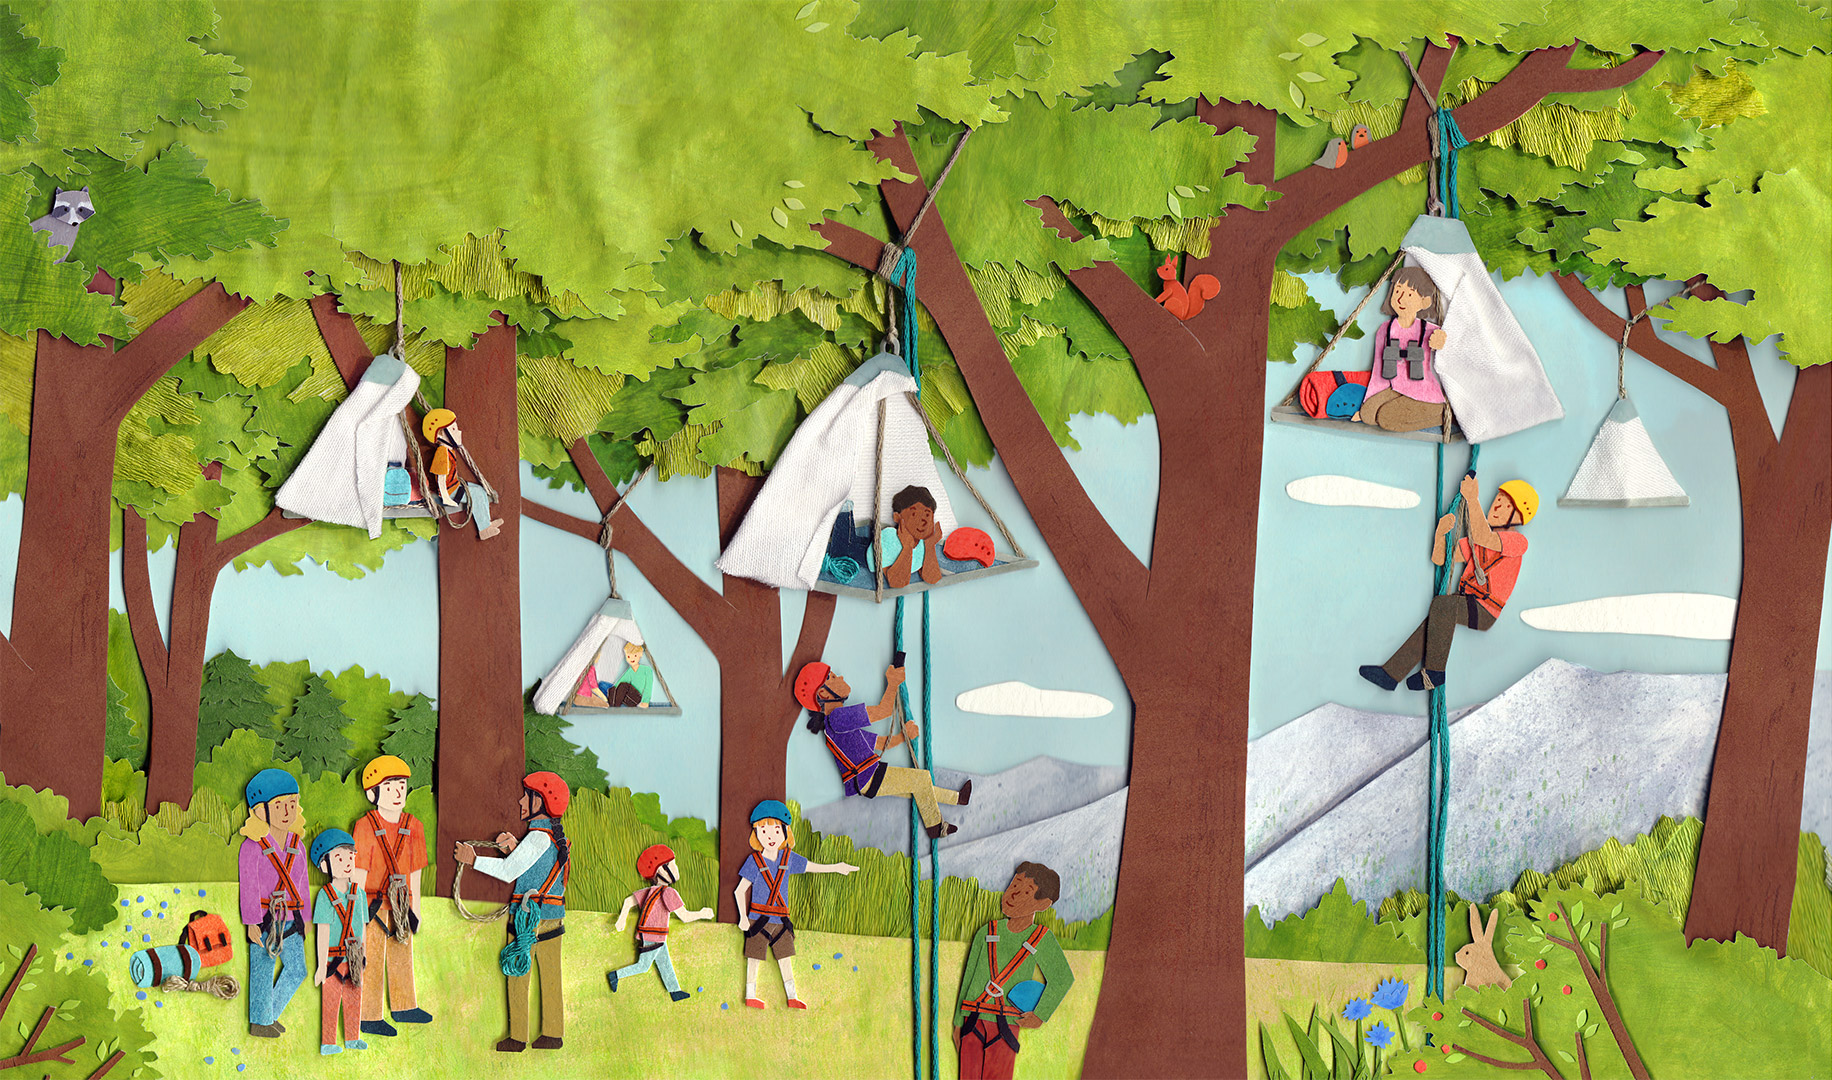 Chirp - Take a Trip - Tree Camping Illustration by Miki Sato